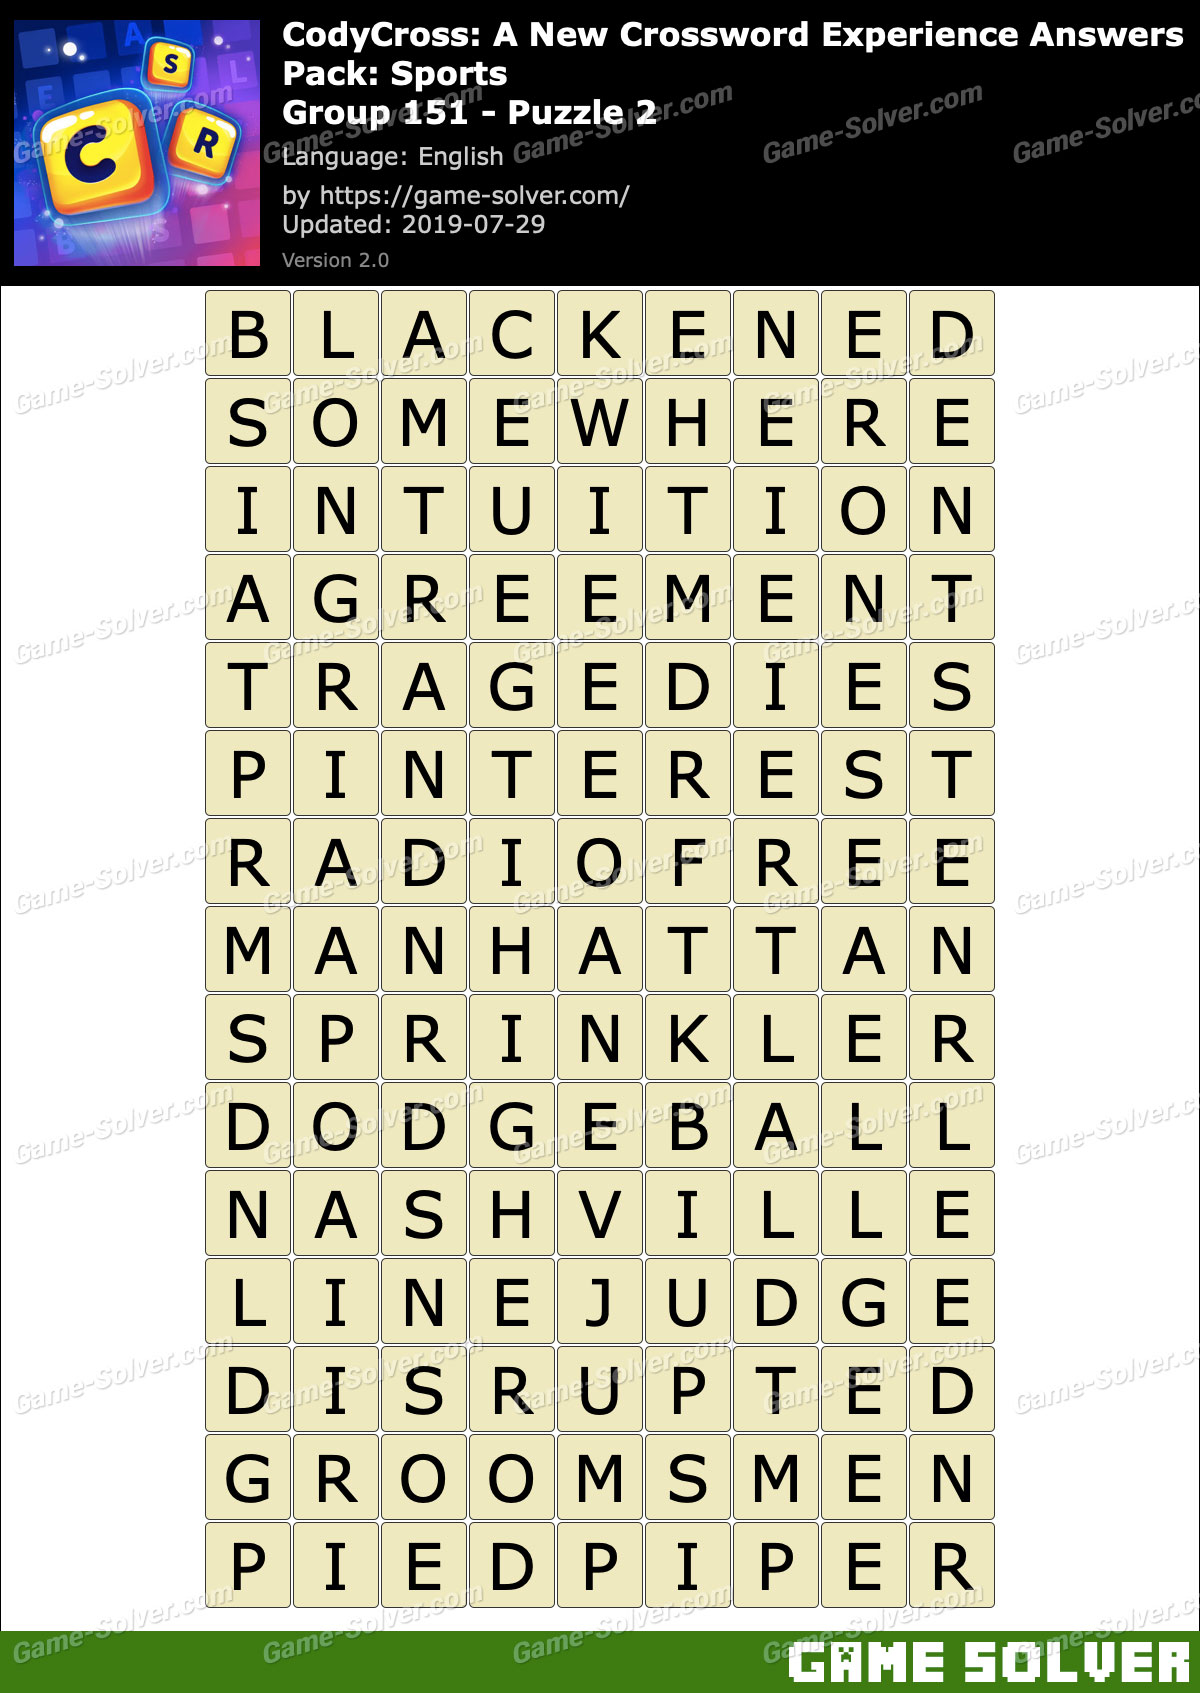 CodyCross Sports Group 151-Puzzle 2 Answers